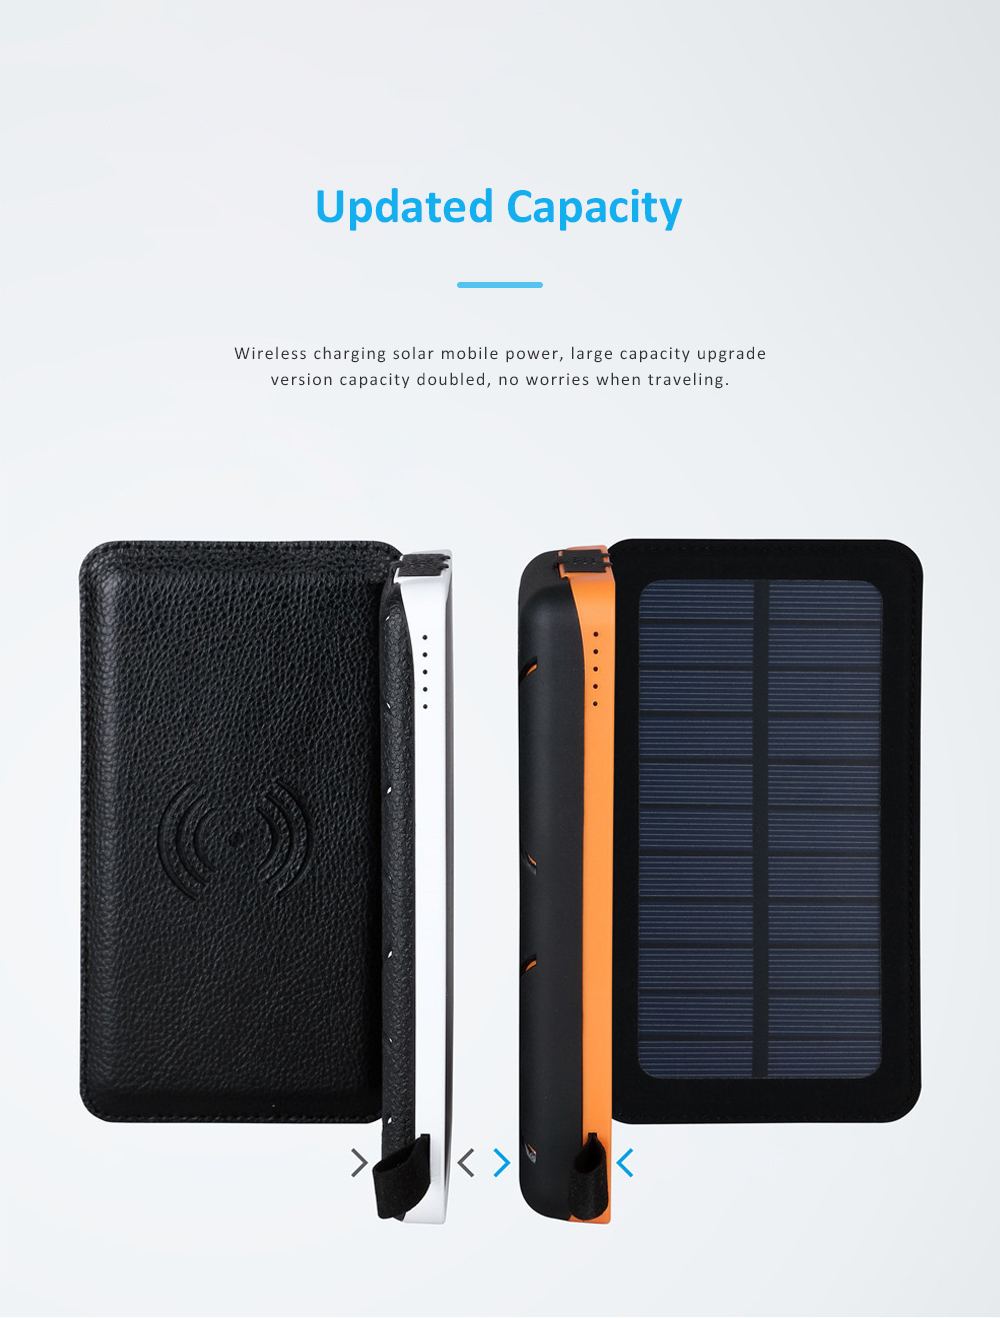 Wireless Charging Solar Charger Foldable Double USB Port Solar Power Bank with Flashlight and Compatible with Many Electronic Devices 2